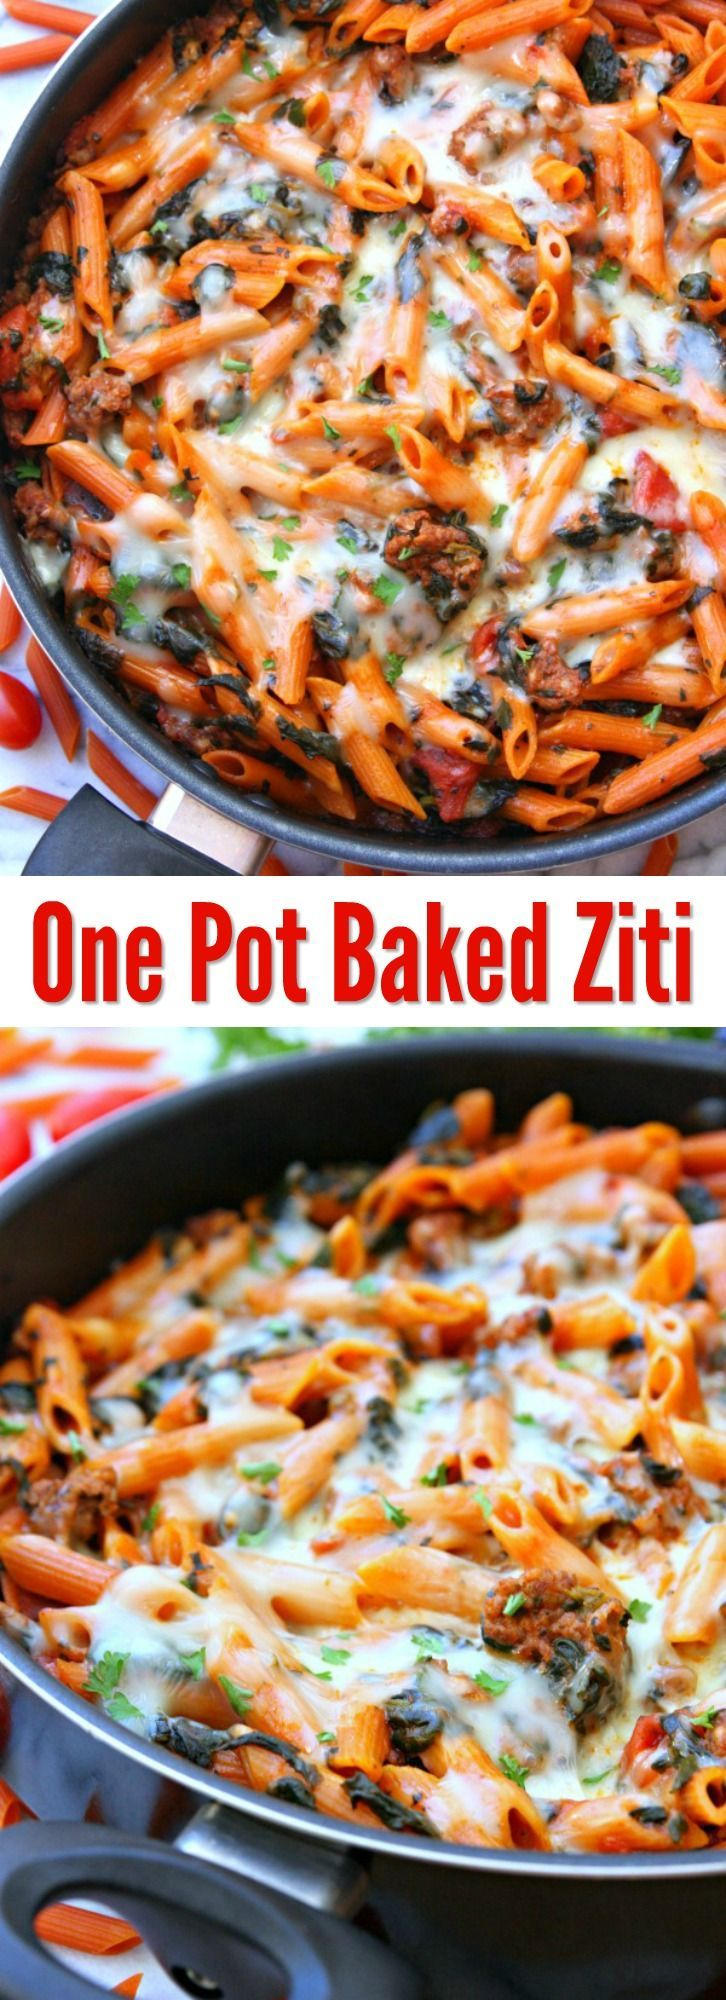 Jun 20, 2020 – One Pot Baked Ziti – An easy dinner the entire family will. Cook everything in one skillet making clean u…